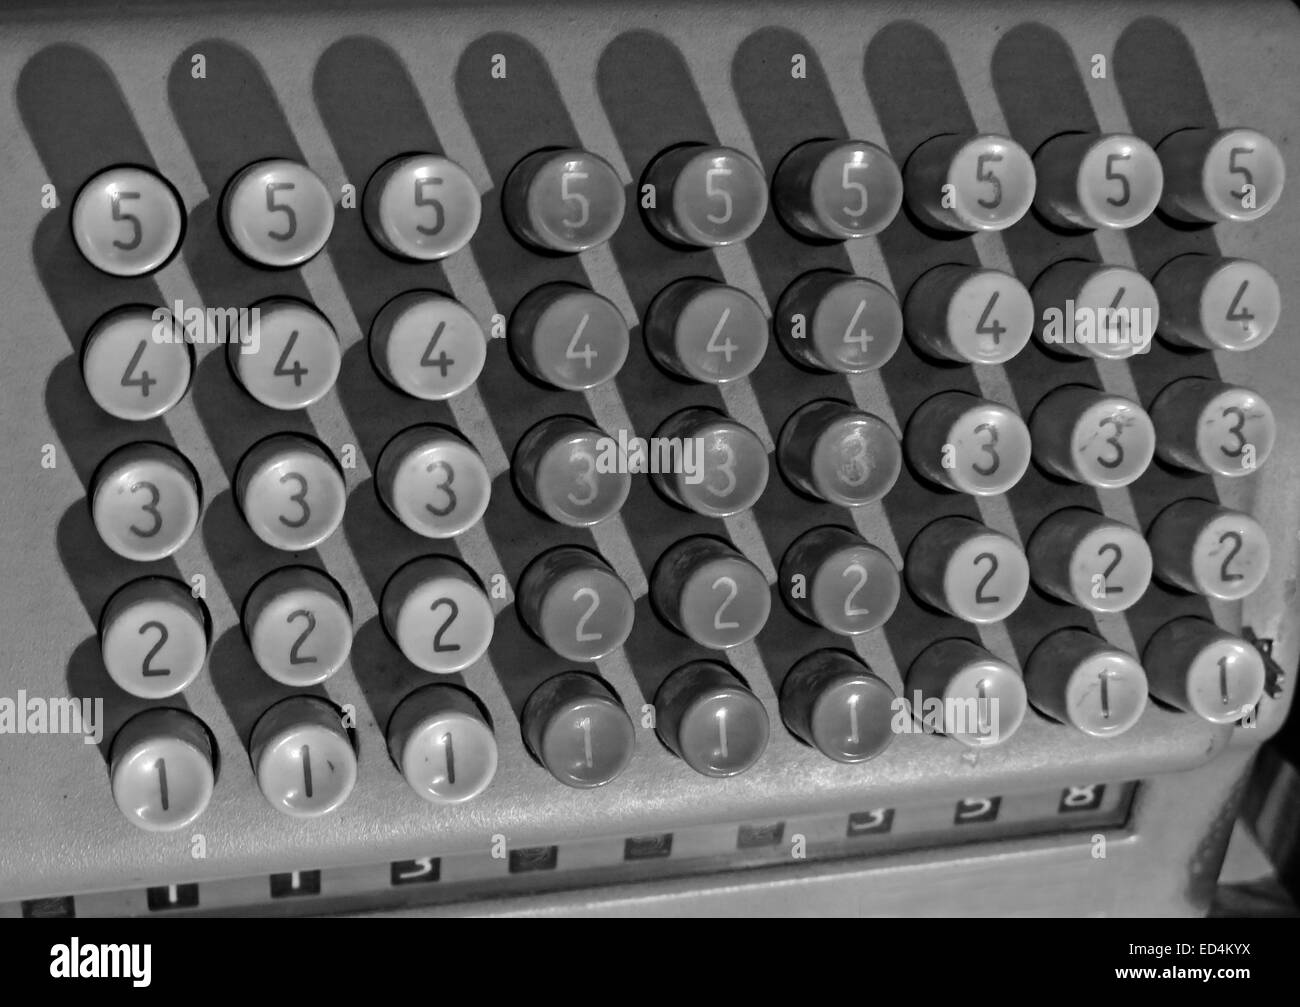 Comptometer - key-driven mechanical calculator showing numbered button keys in monochrome - Stock Image